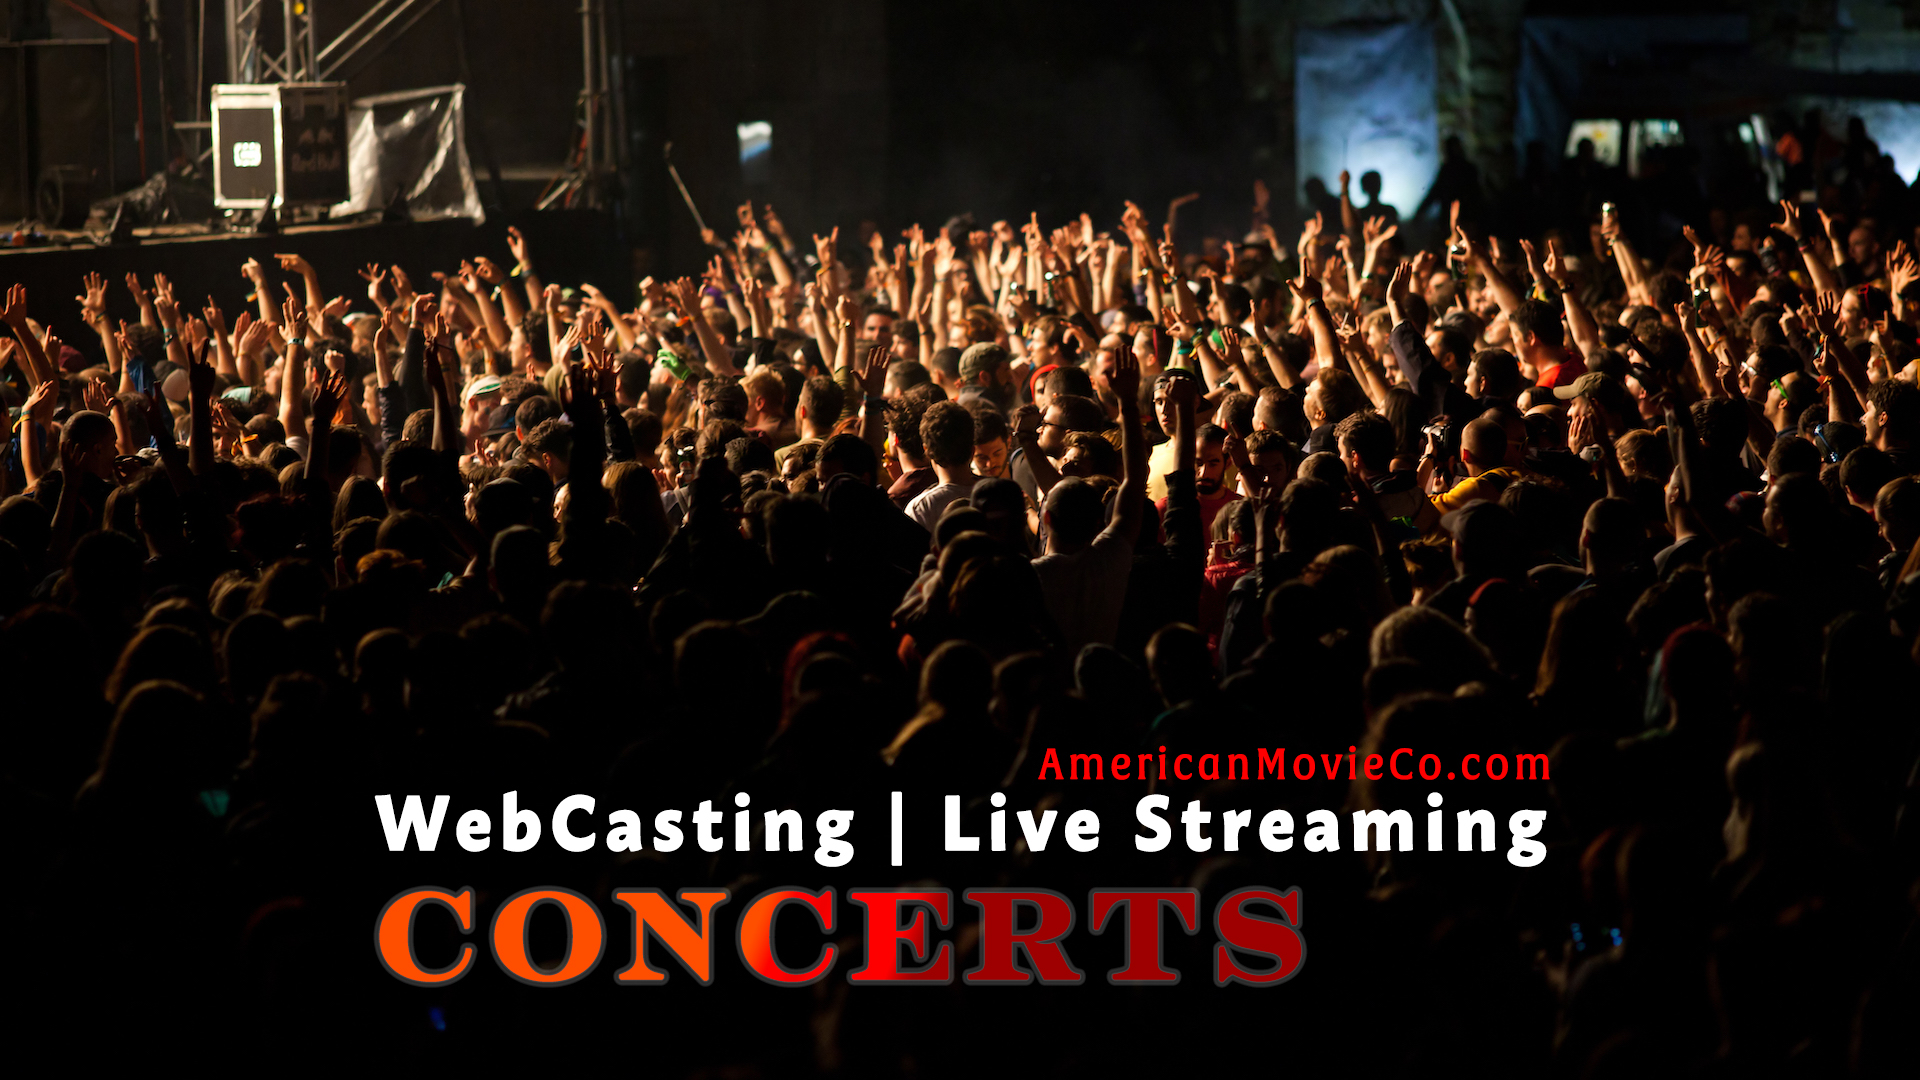 WebCasting | Live Streaming - Concerts